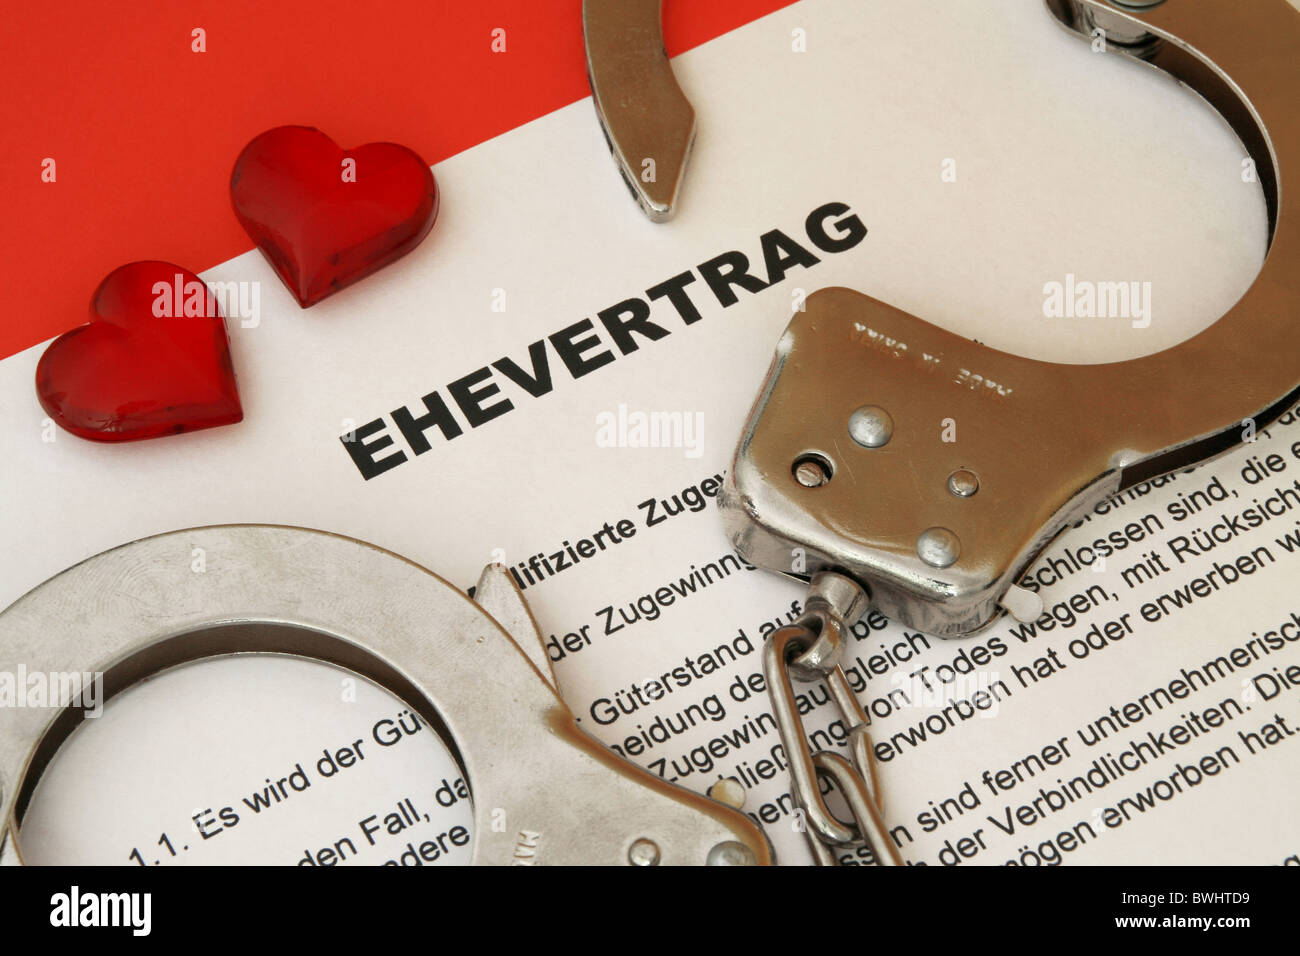 marriage contract before partners mates contract by contract separation allow to part document paper held on - Stock Image